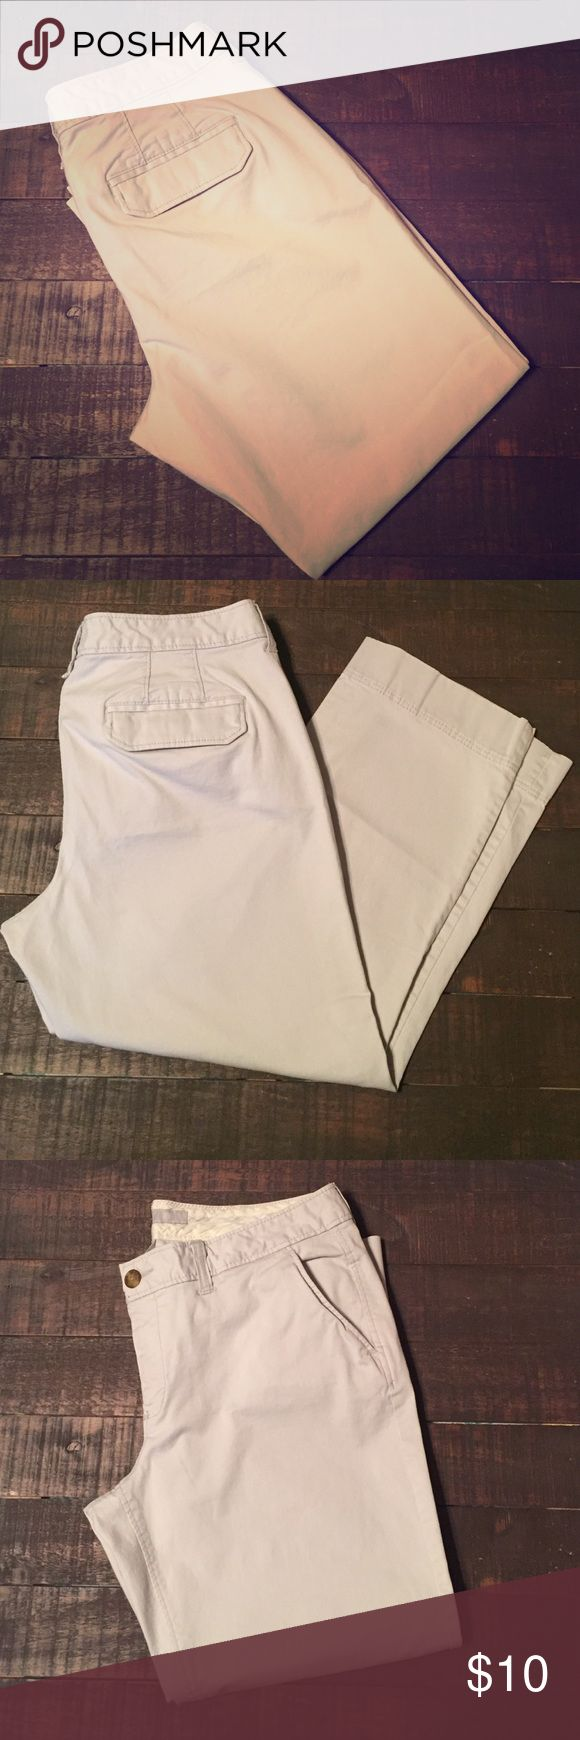 Old Navy Khaki Capris Old Navy Khaki Capris. Regular fit. Good condition. Old Navy Pants Capris